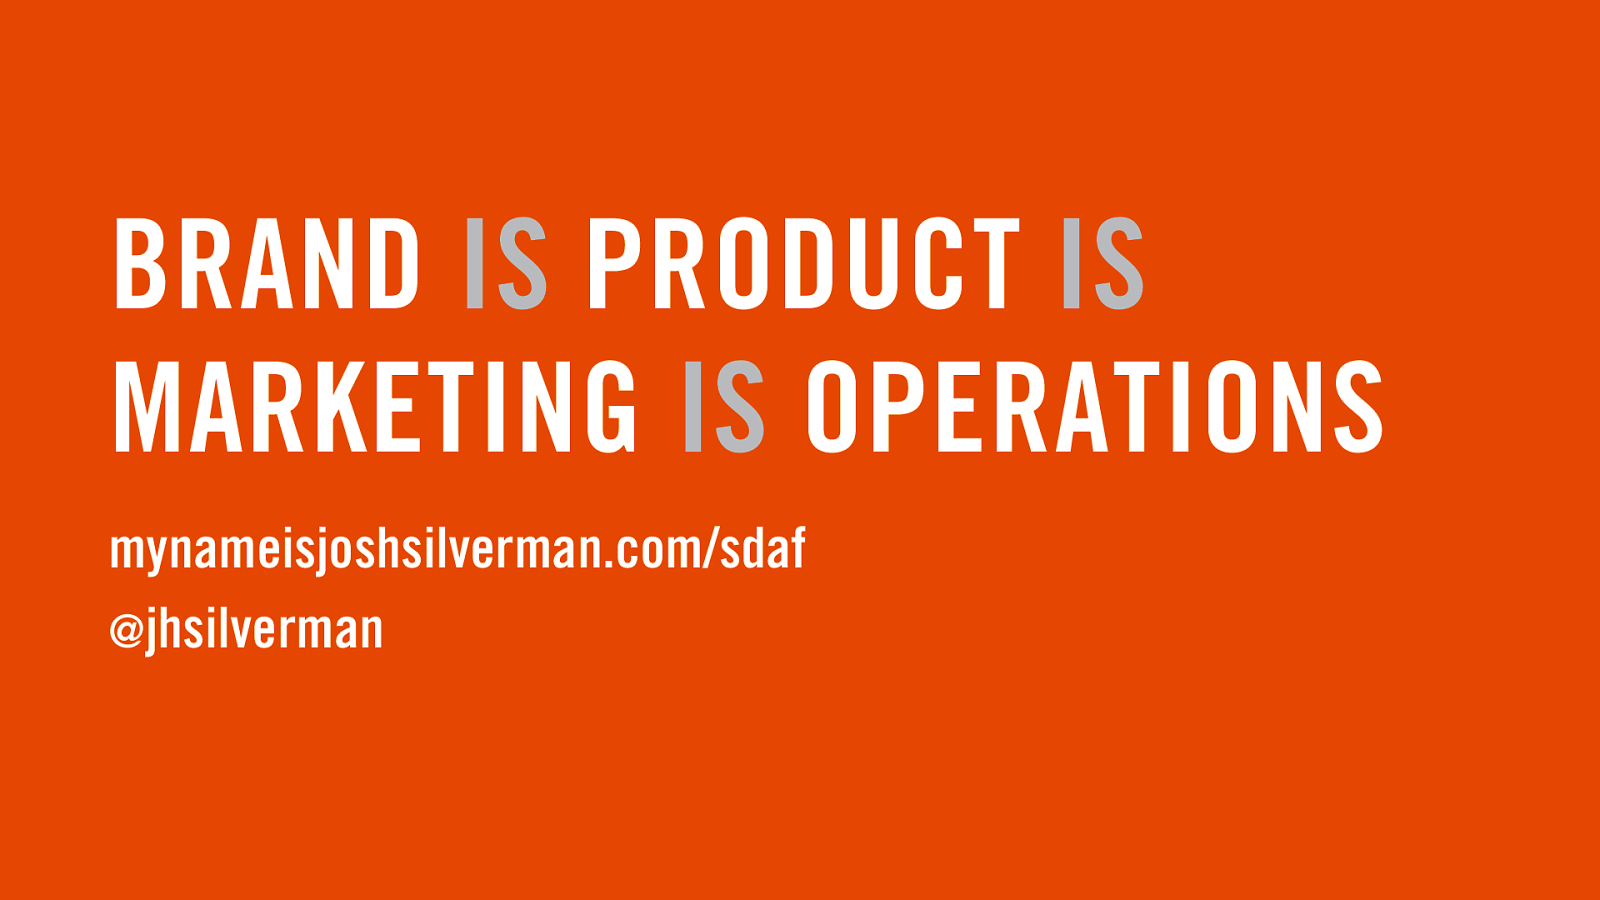 Brand is Product is Marketing is Operations